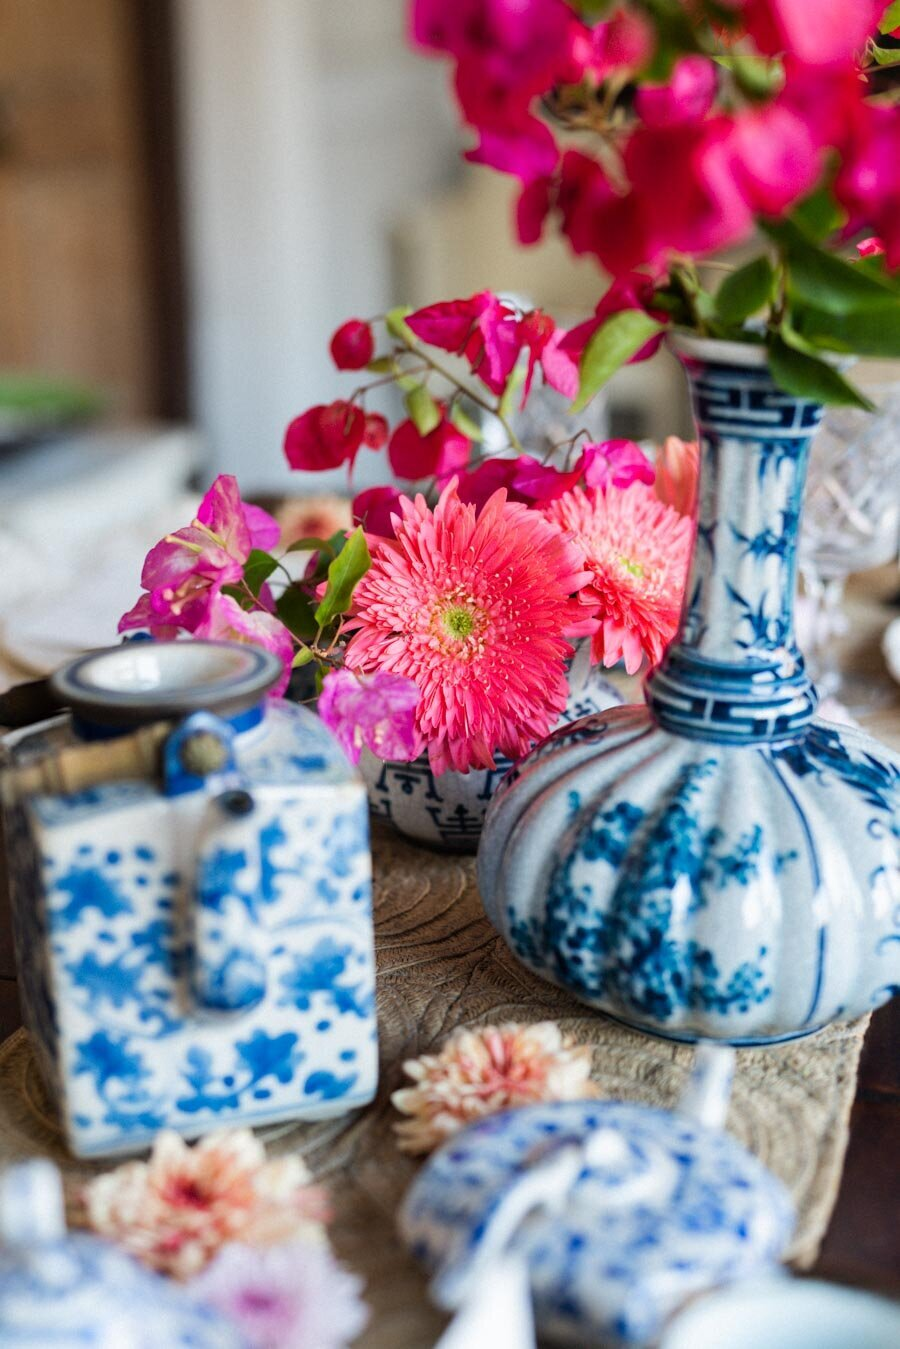 Bougainvillea Centerpiece Blue and White Ginger Jars Indian Wedding Photographer Bonnie Sen Photography